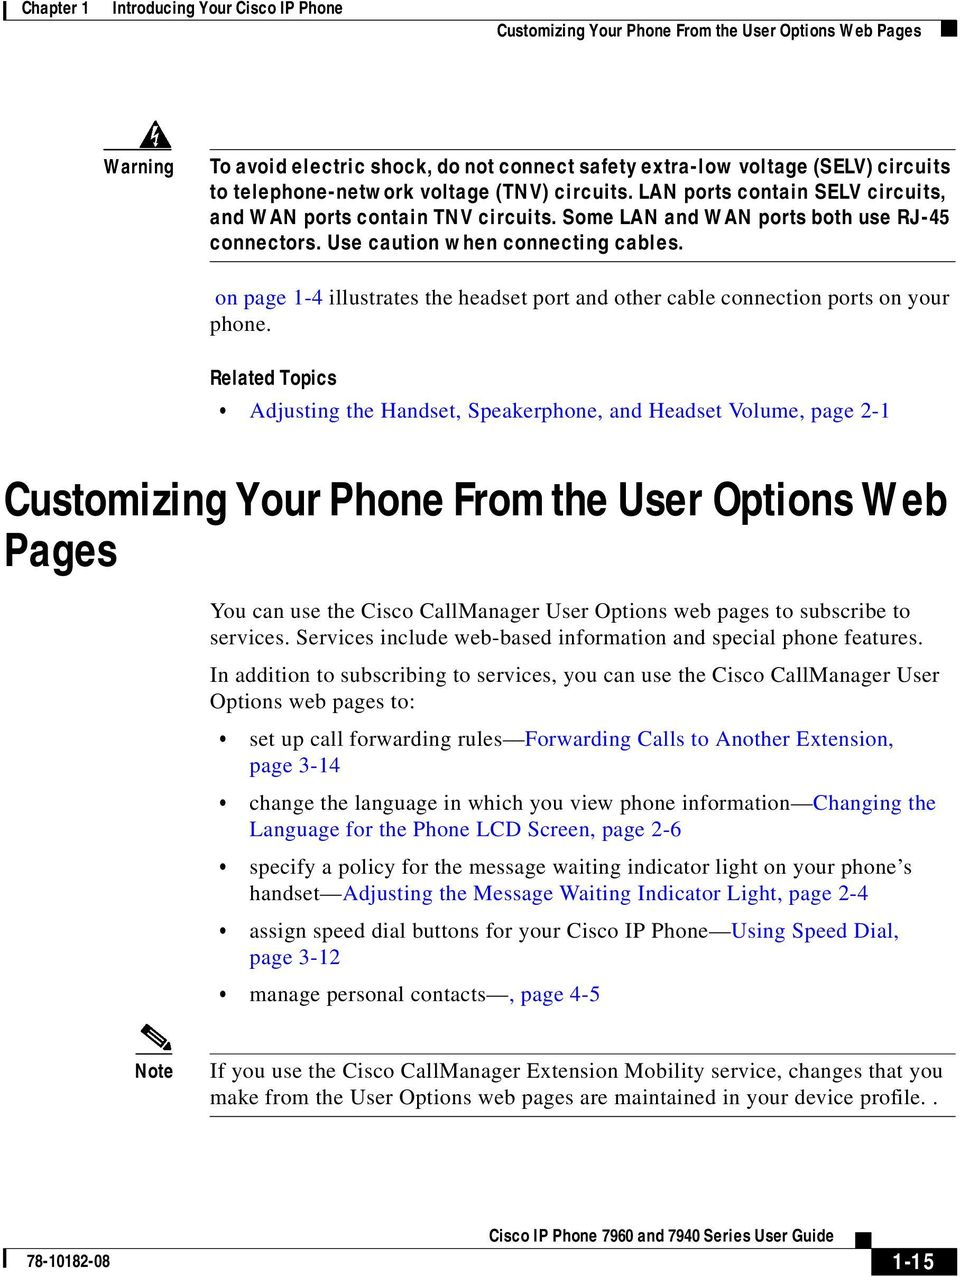 on page 1-4 illustrates the headset port and other cable connection ports on your phone.